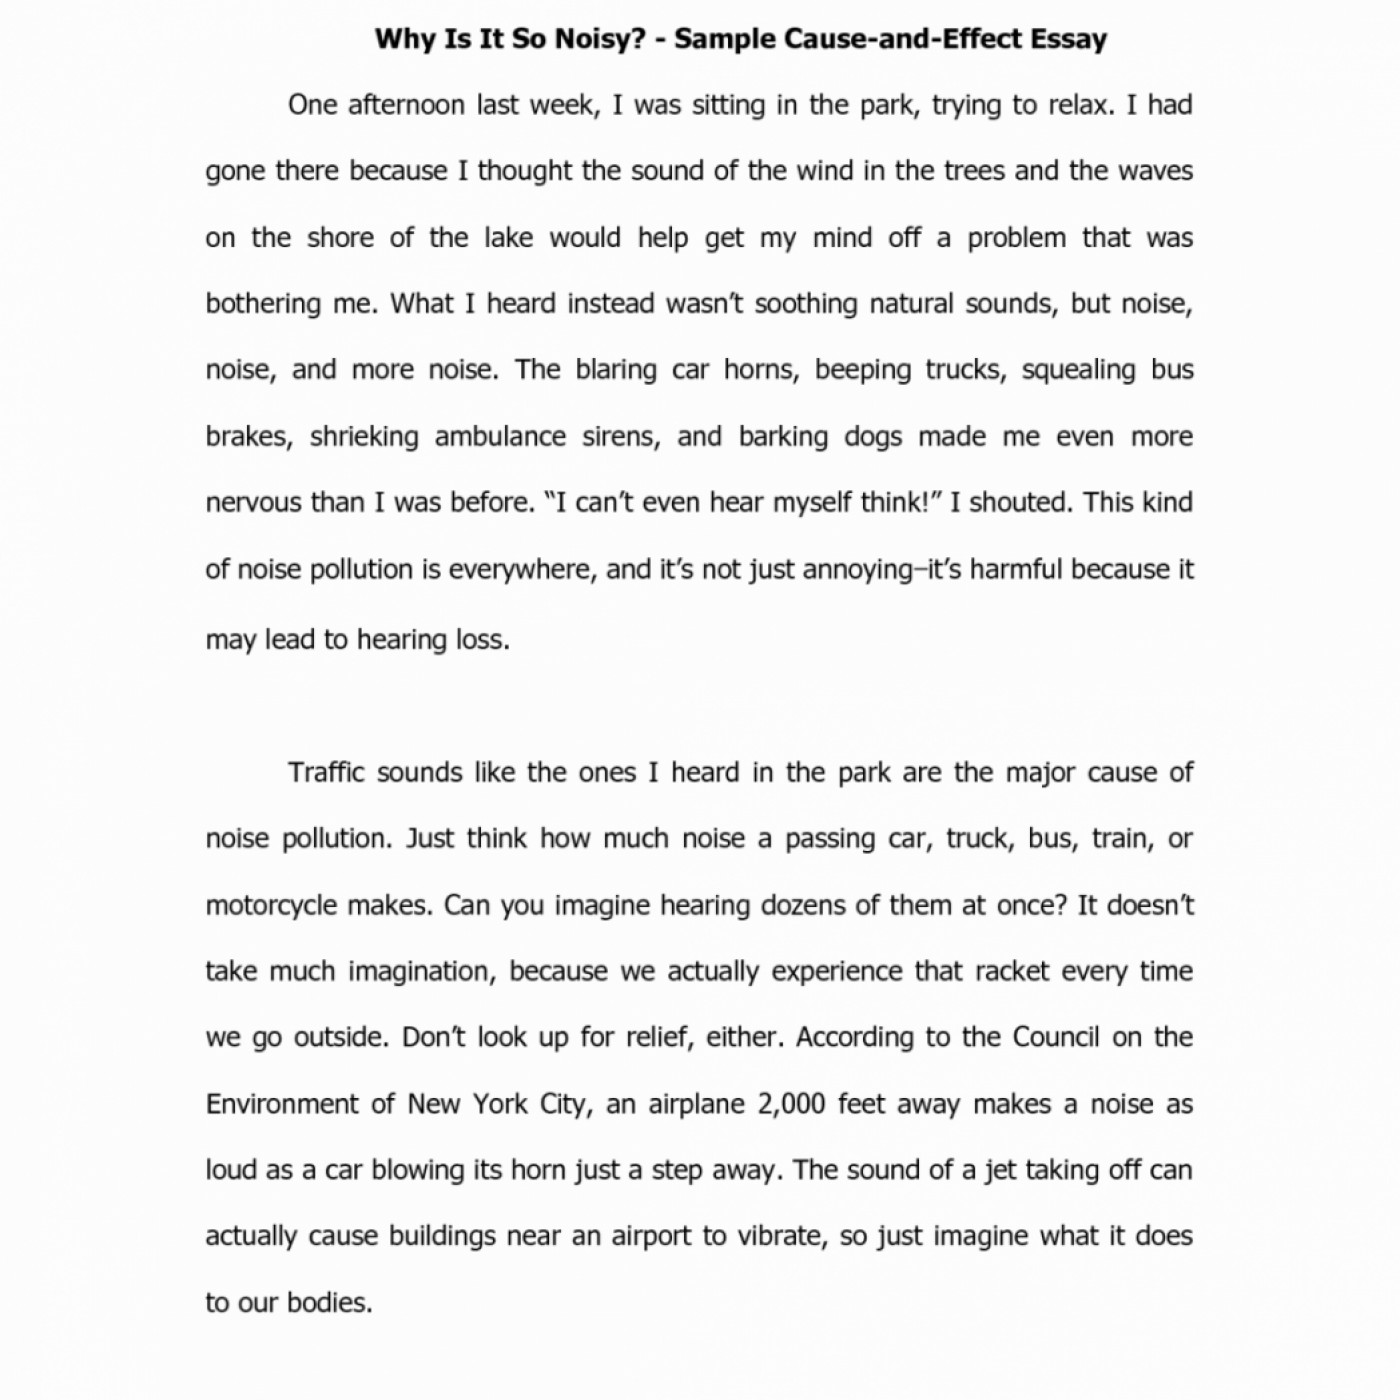 027 Cause And Effect Essays Format Best Of For Or Good Cover Bystander Domino Analysis Ielts Free 6th Grade College Pdf Middle School 1048x1048 Amazing Essay Examples Divorce On Stress 4th 1400